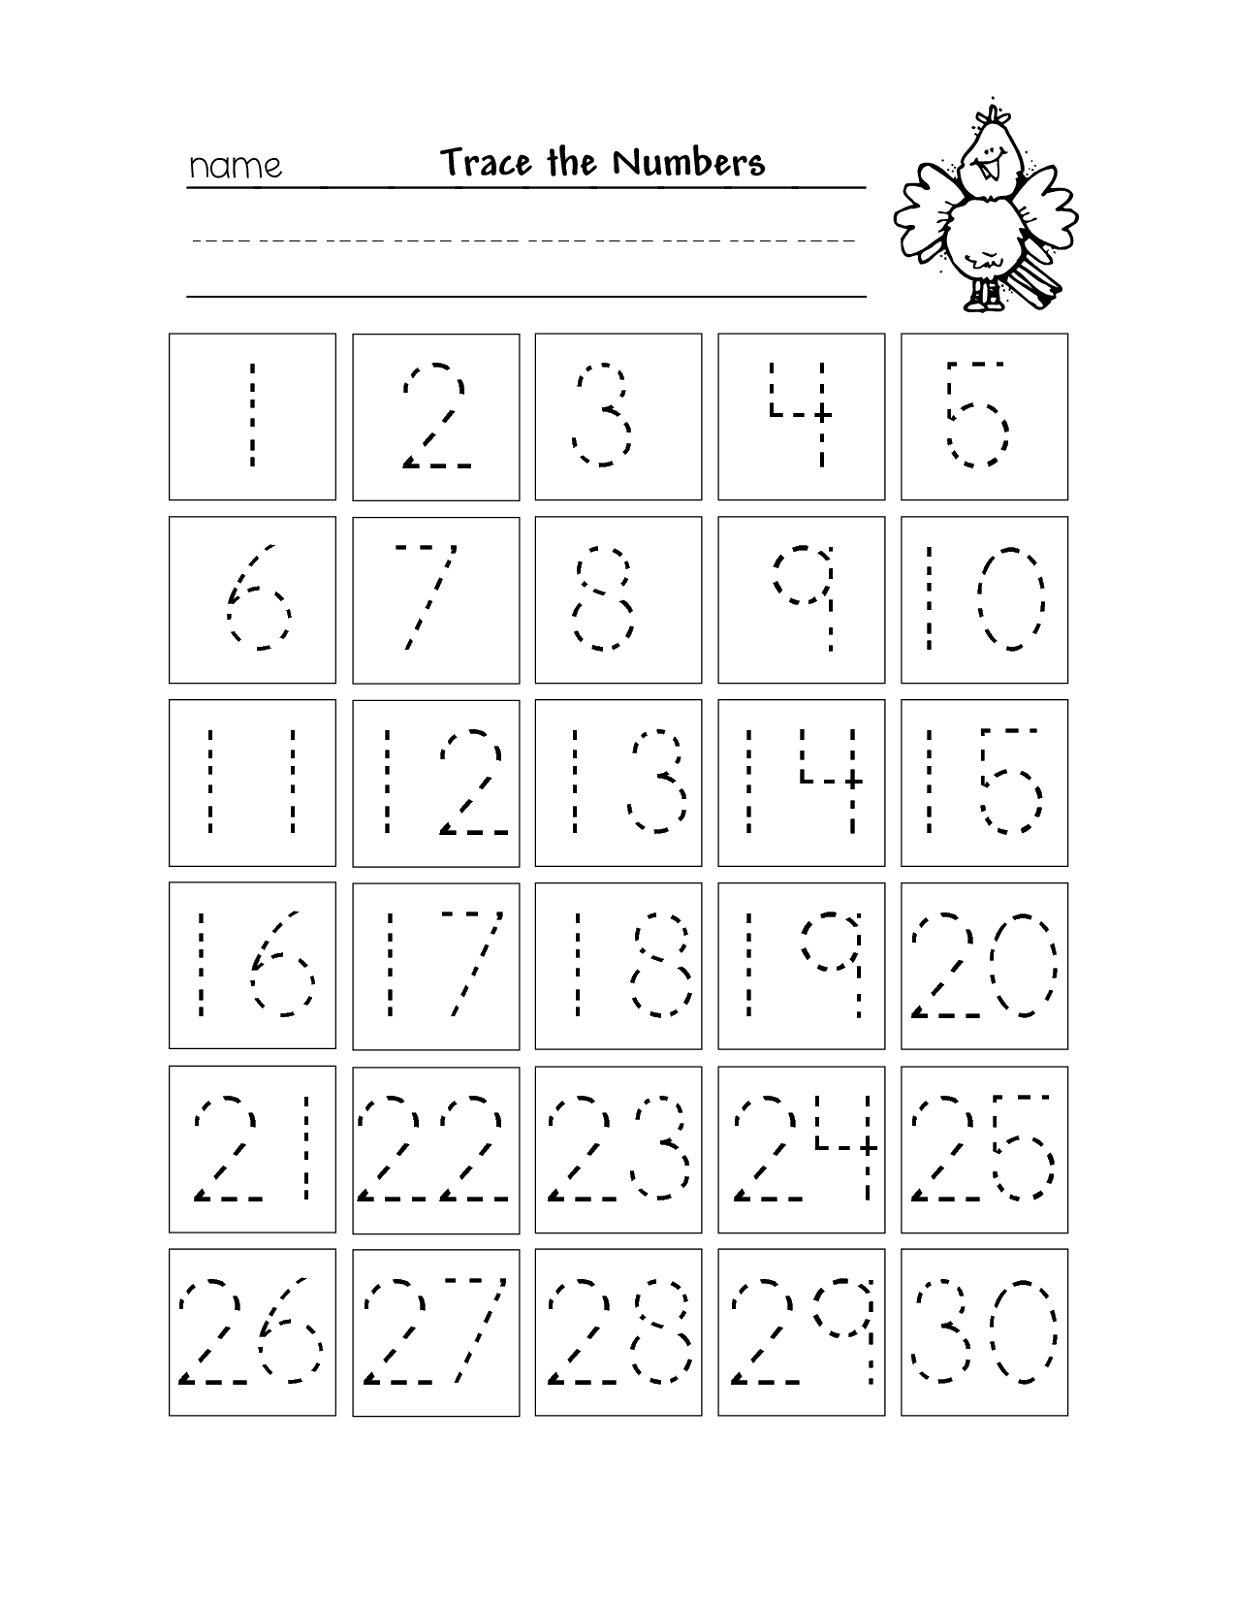 Free Printable Number Chart 1-30 | Kinder | Kindergarten Worksheets | Free Printable Number Worksheets